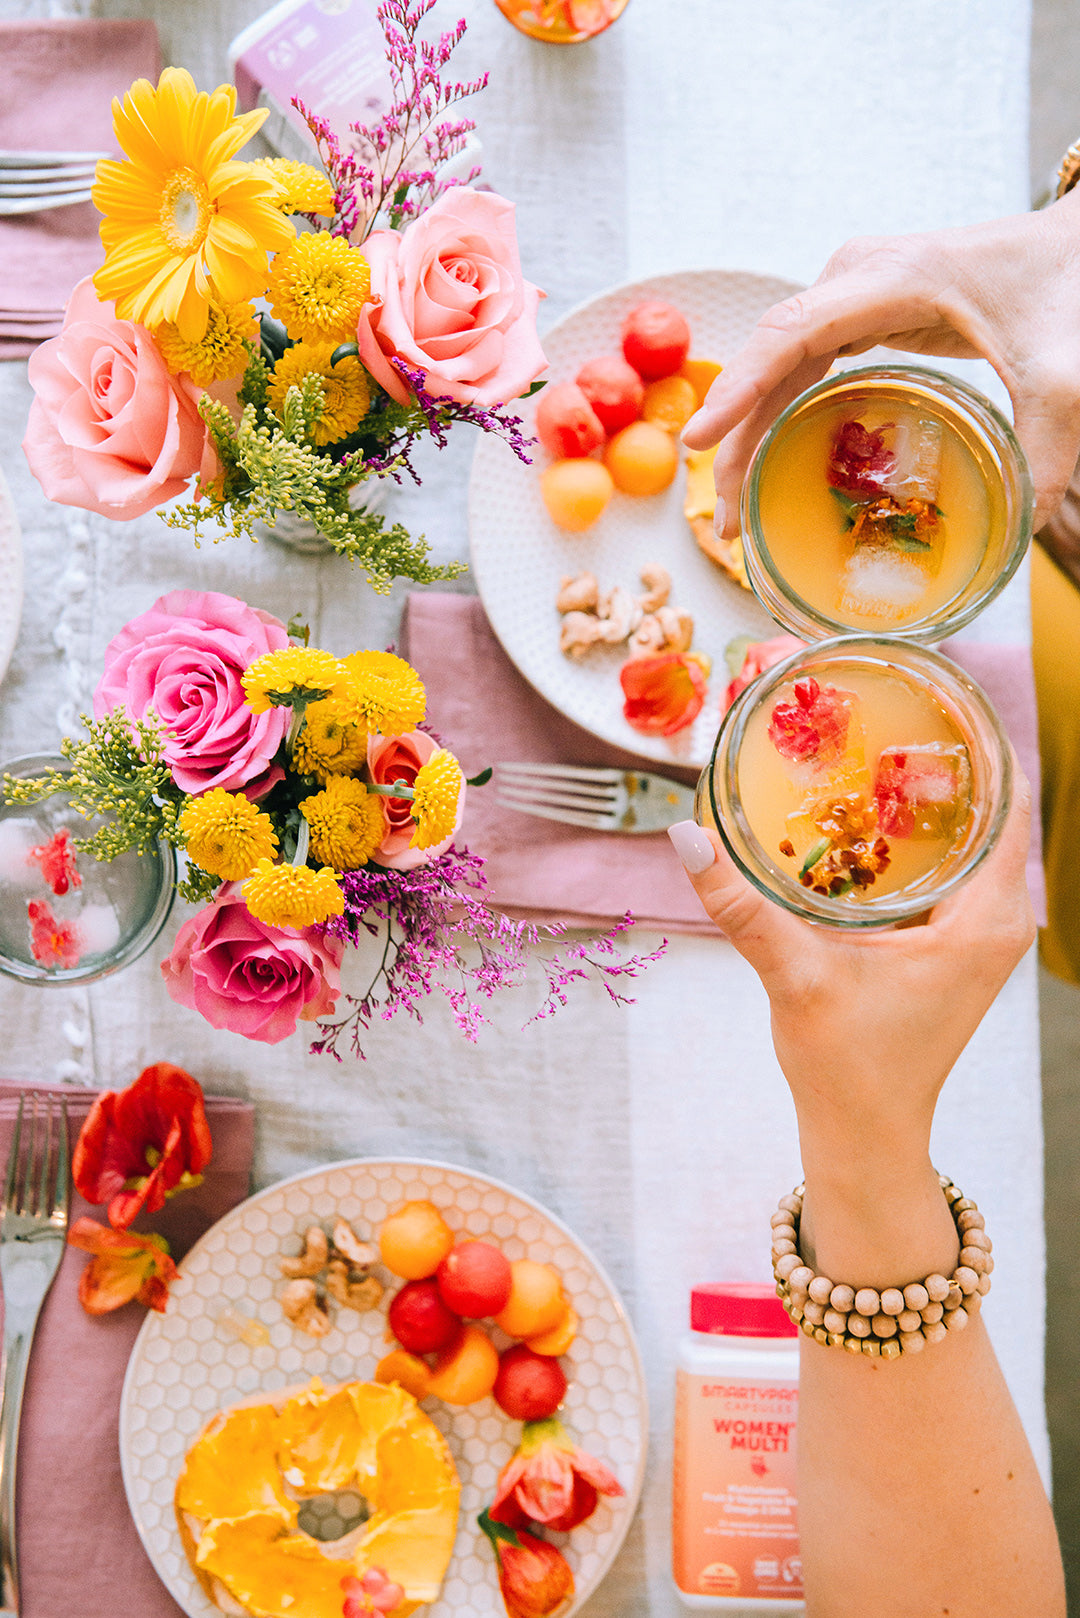 Table set, shot from above. The table is set with flowers and breakfast plates with bagels and fruit. We see two women's had cheers-ing with mimosas in mason jars, with flower petals in the mimosas.